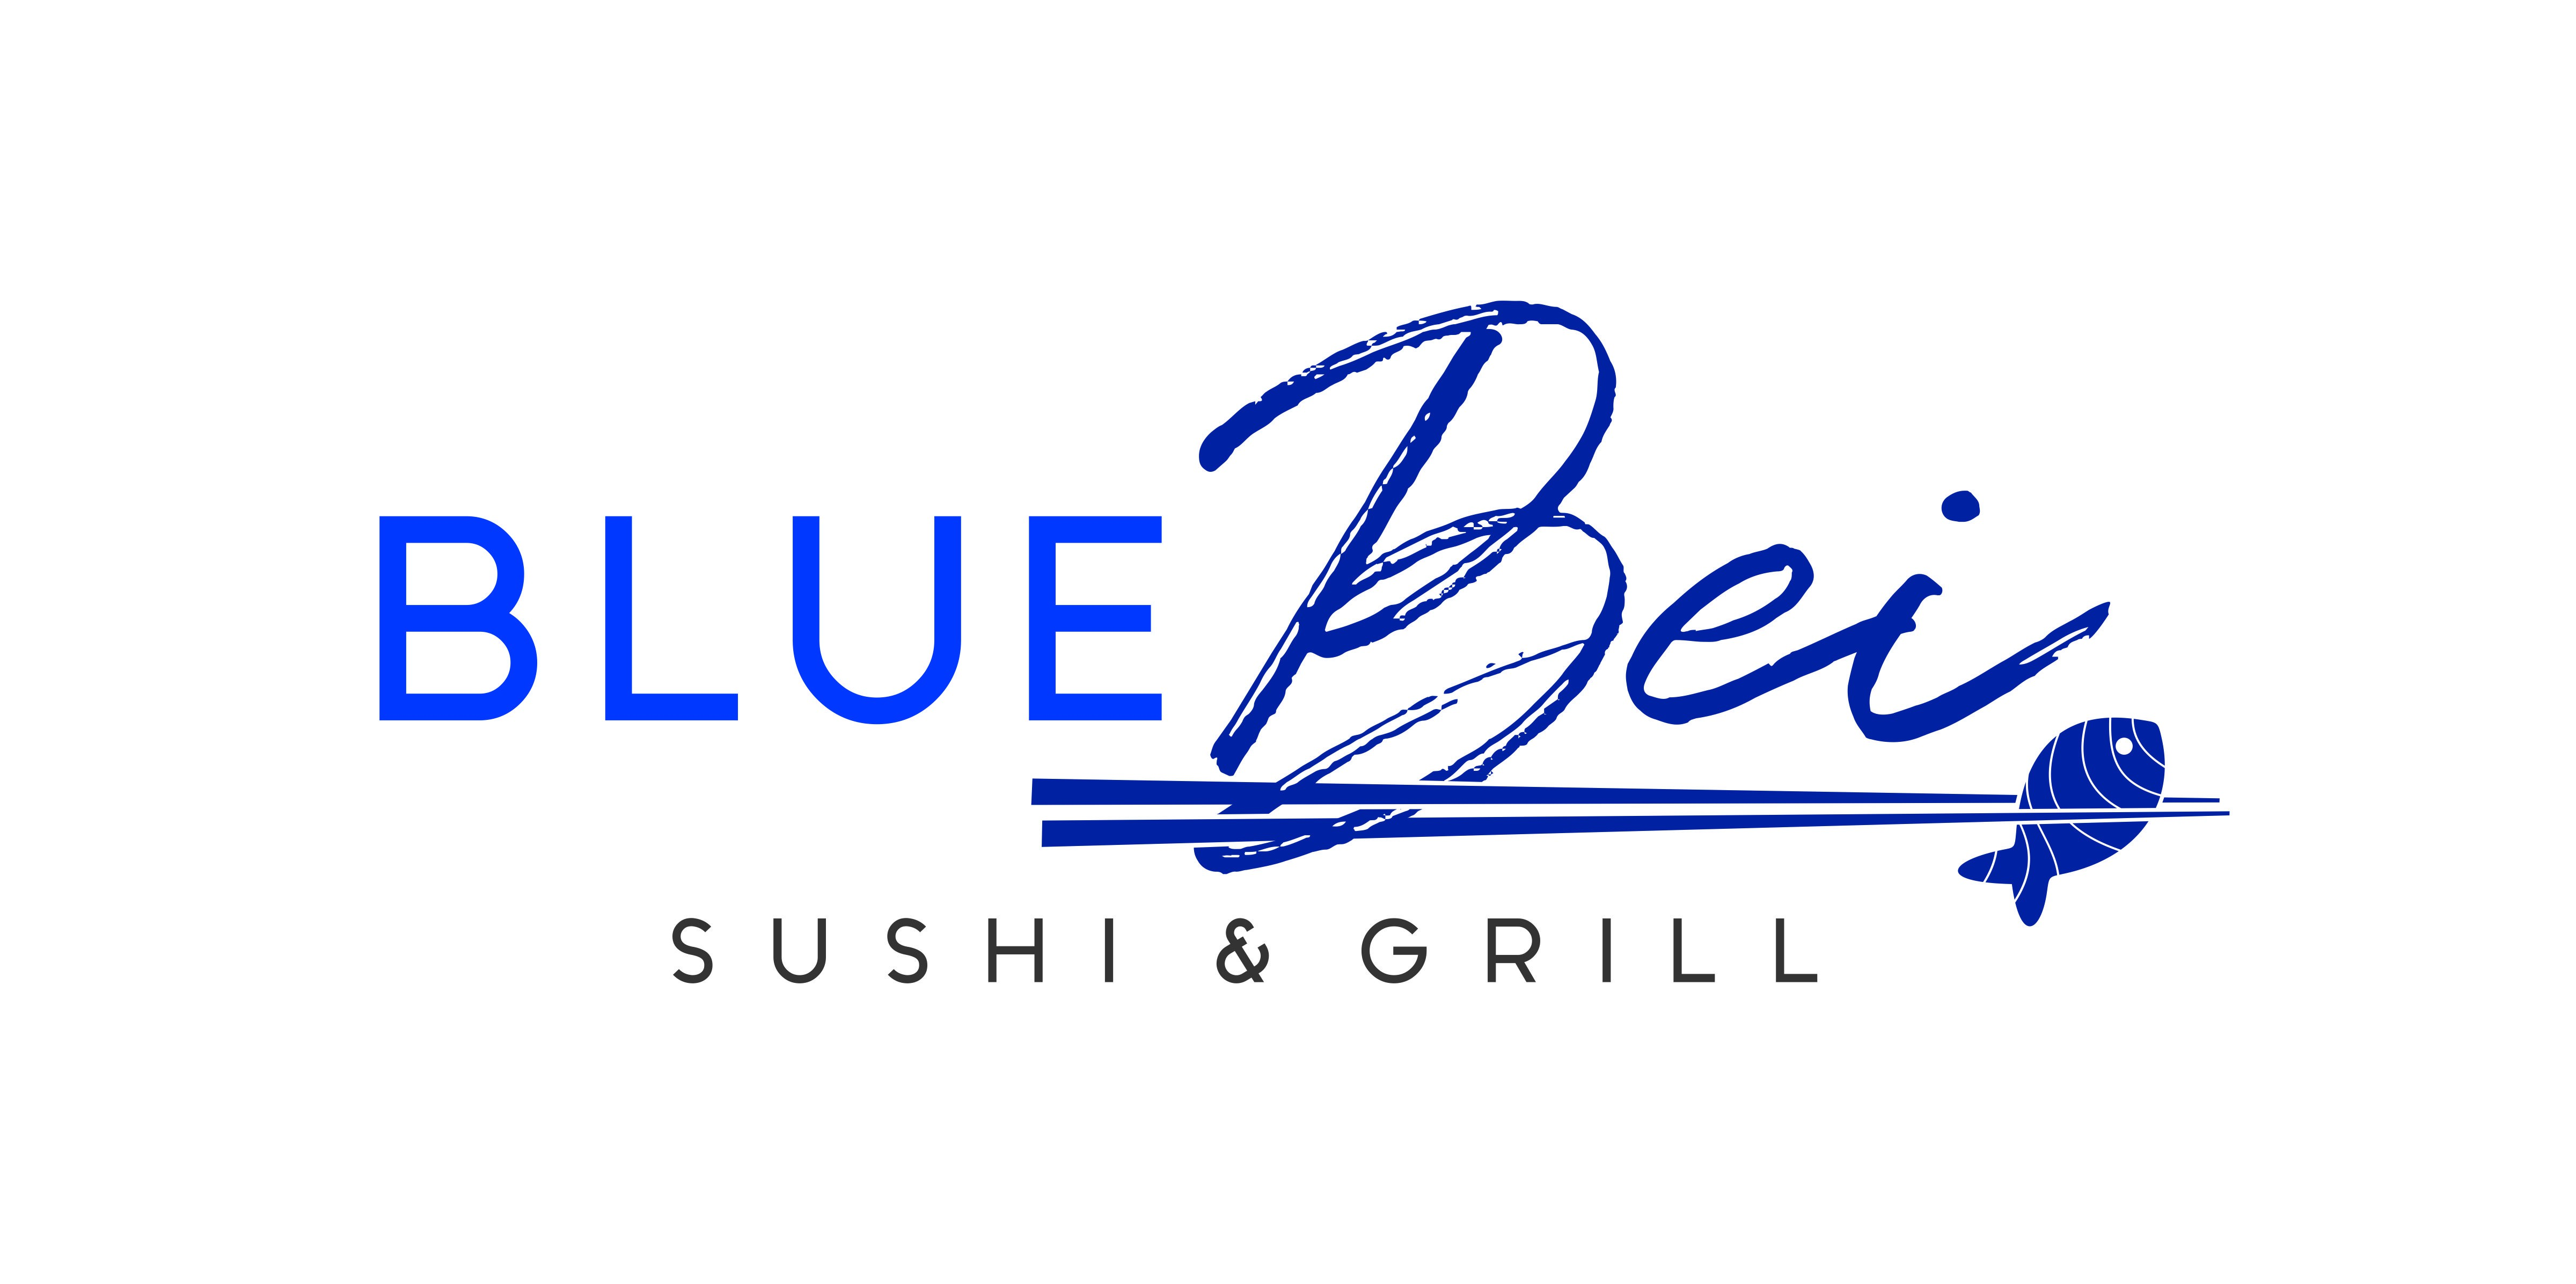 Design a sharp cool looking logo for BlueBei sushi restaurant